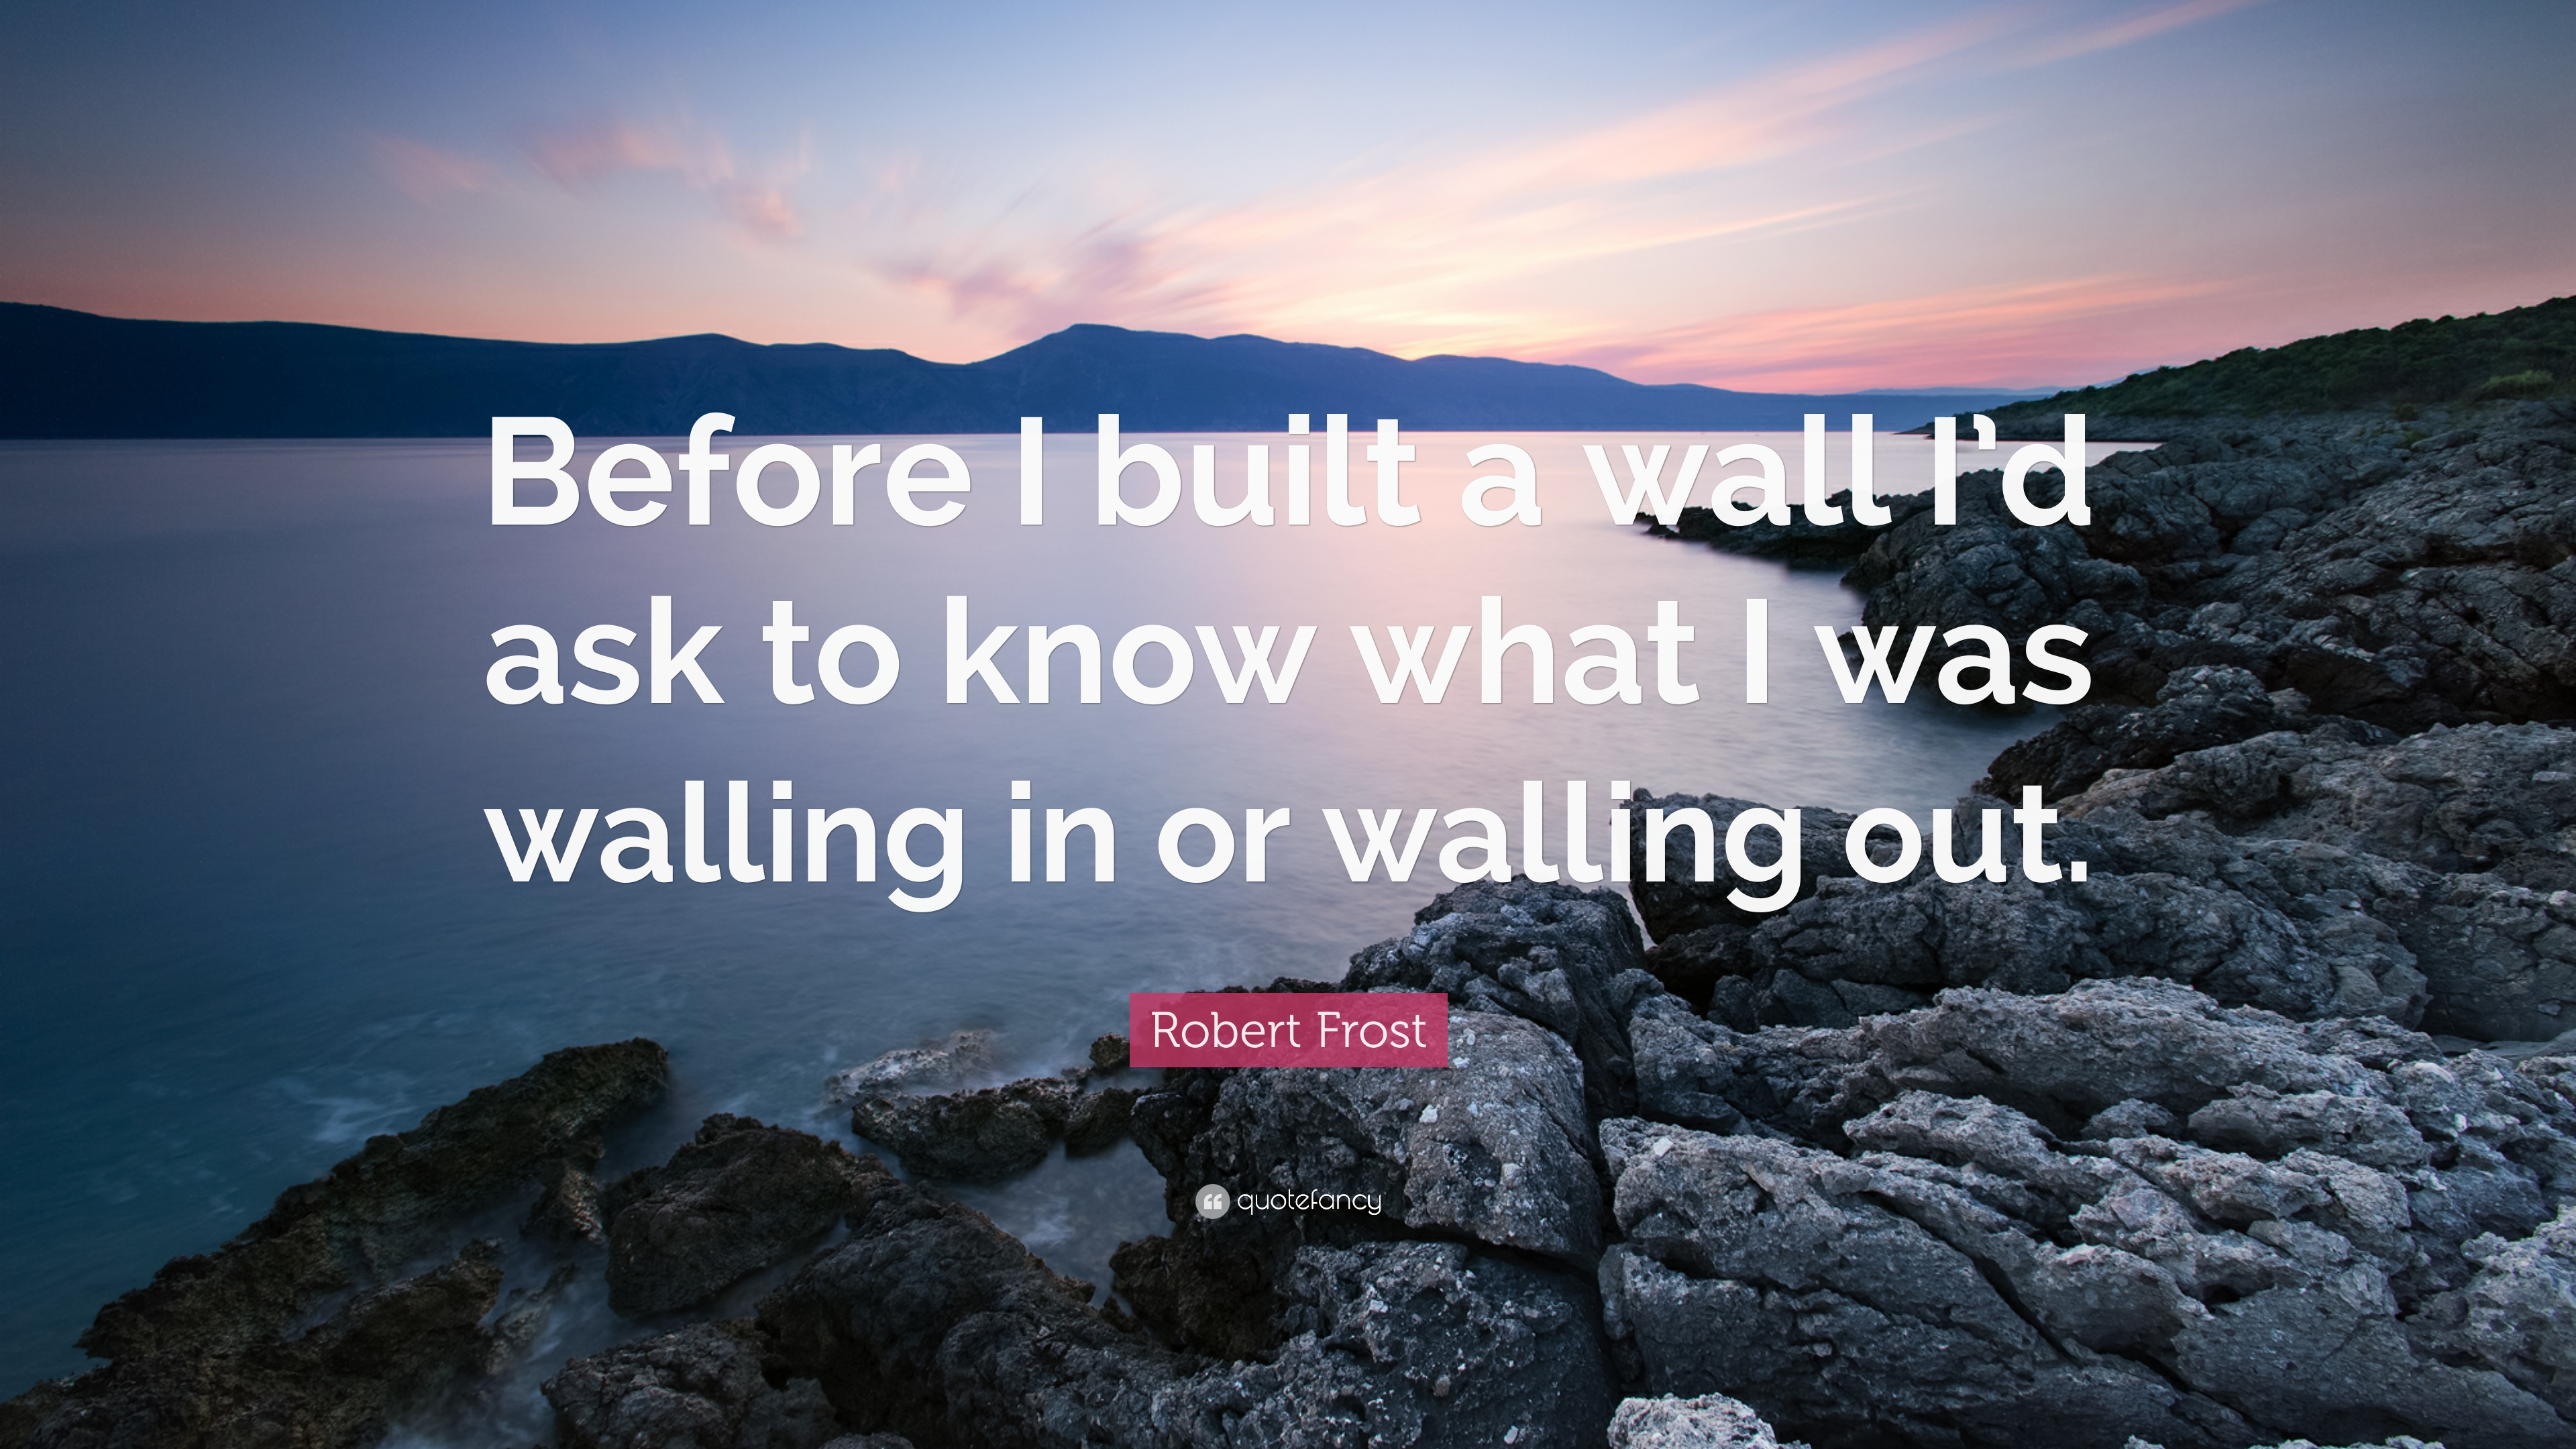 Robert Frost Quote: '� Before I Built A Wall I'd Ask To